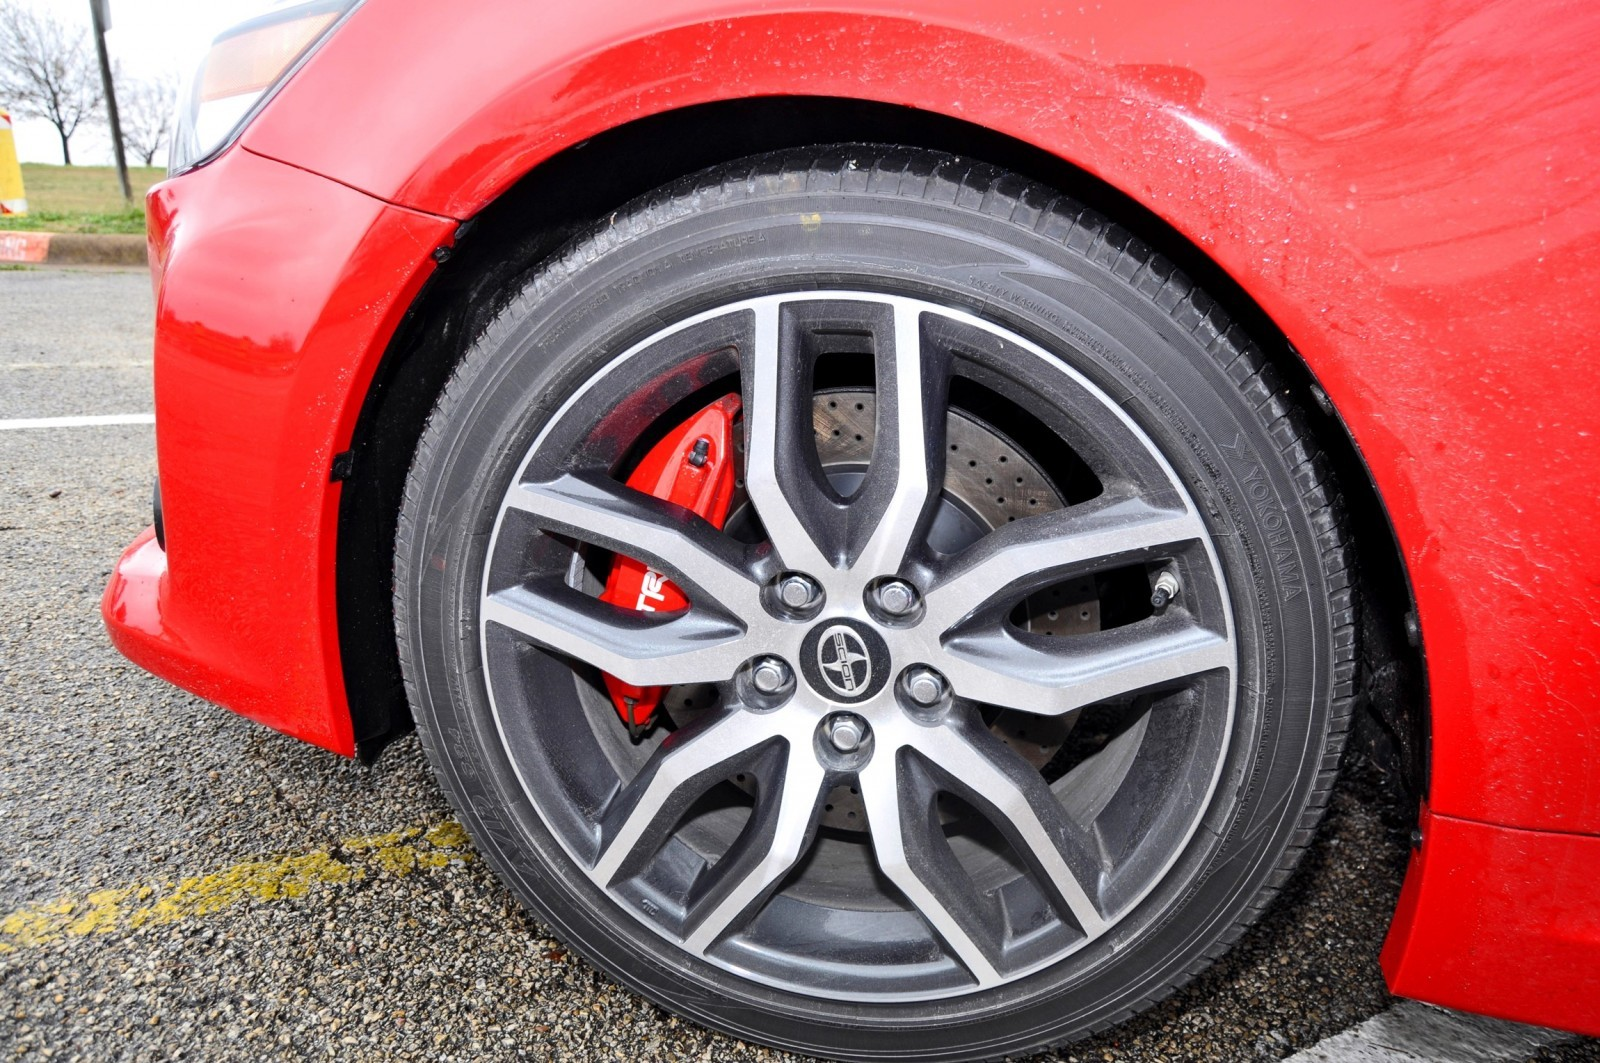 Road Test Review - 2015 Scion tC 6-Speed With TRD Performance Parts 108